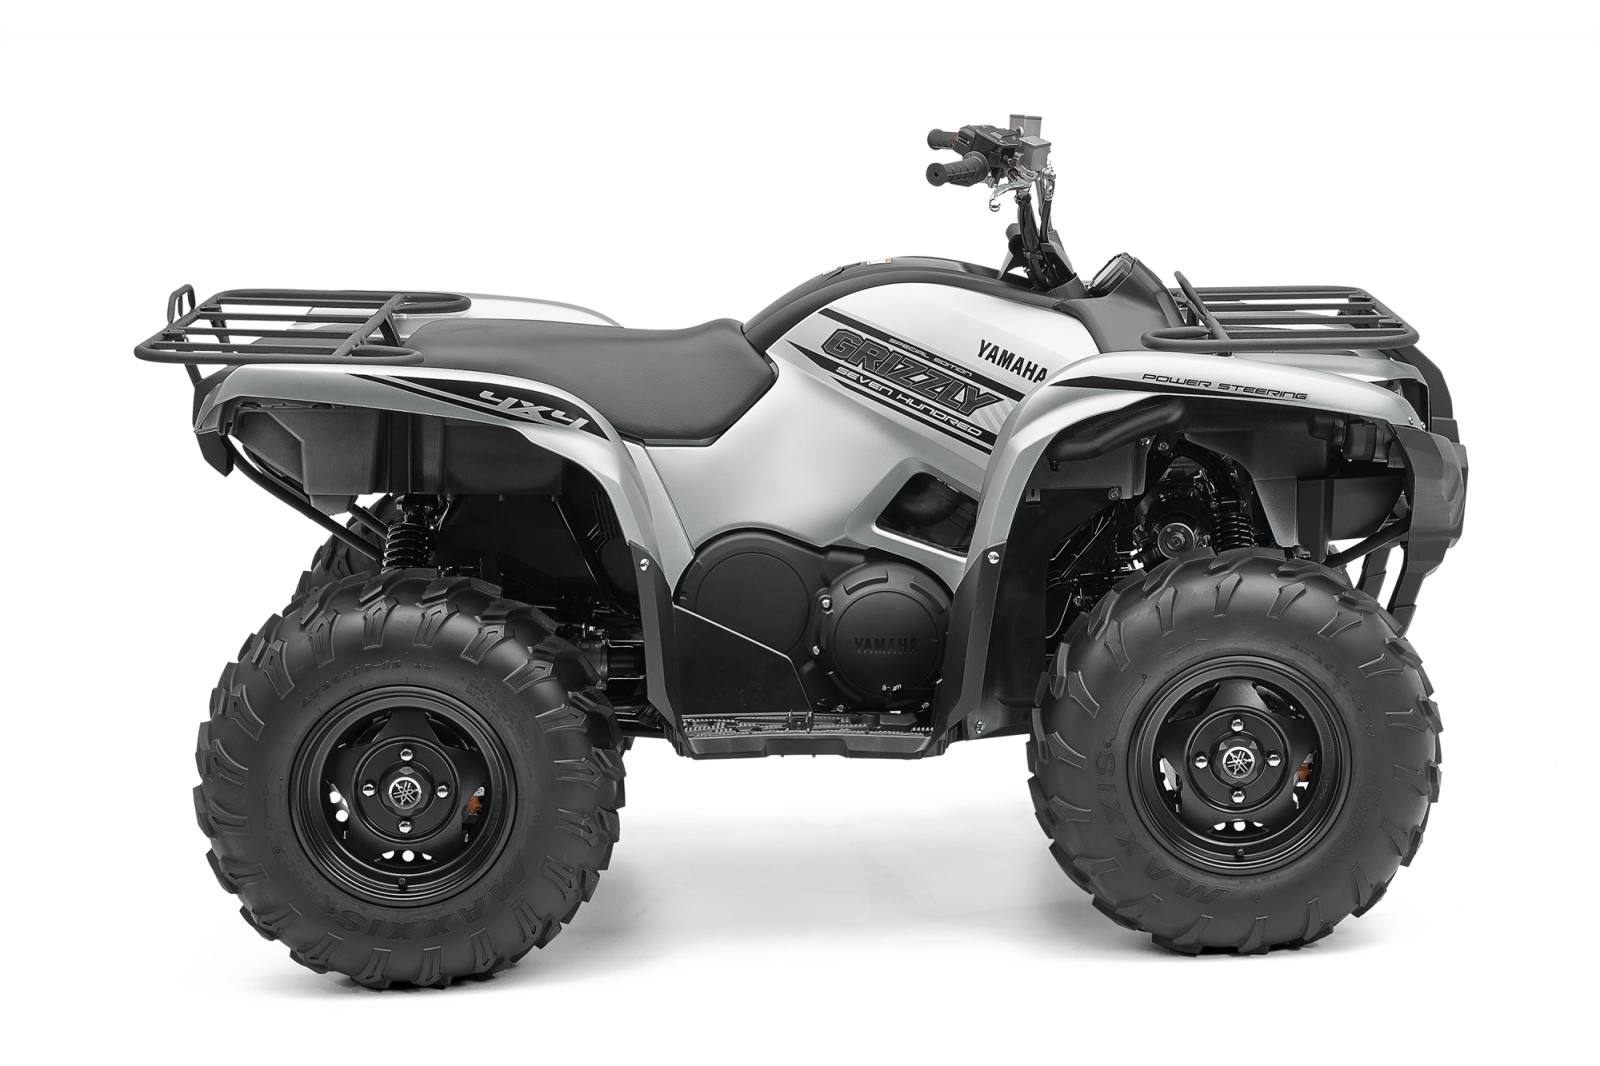 Grizzly 700 FI Auto. 4x4 EPS Special Edition